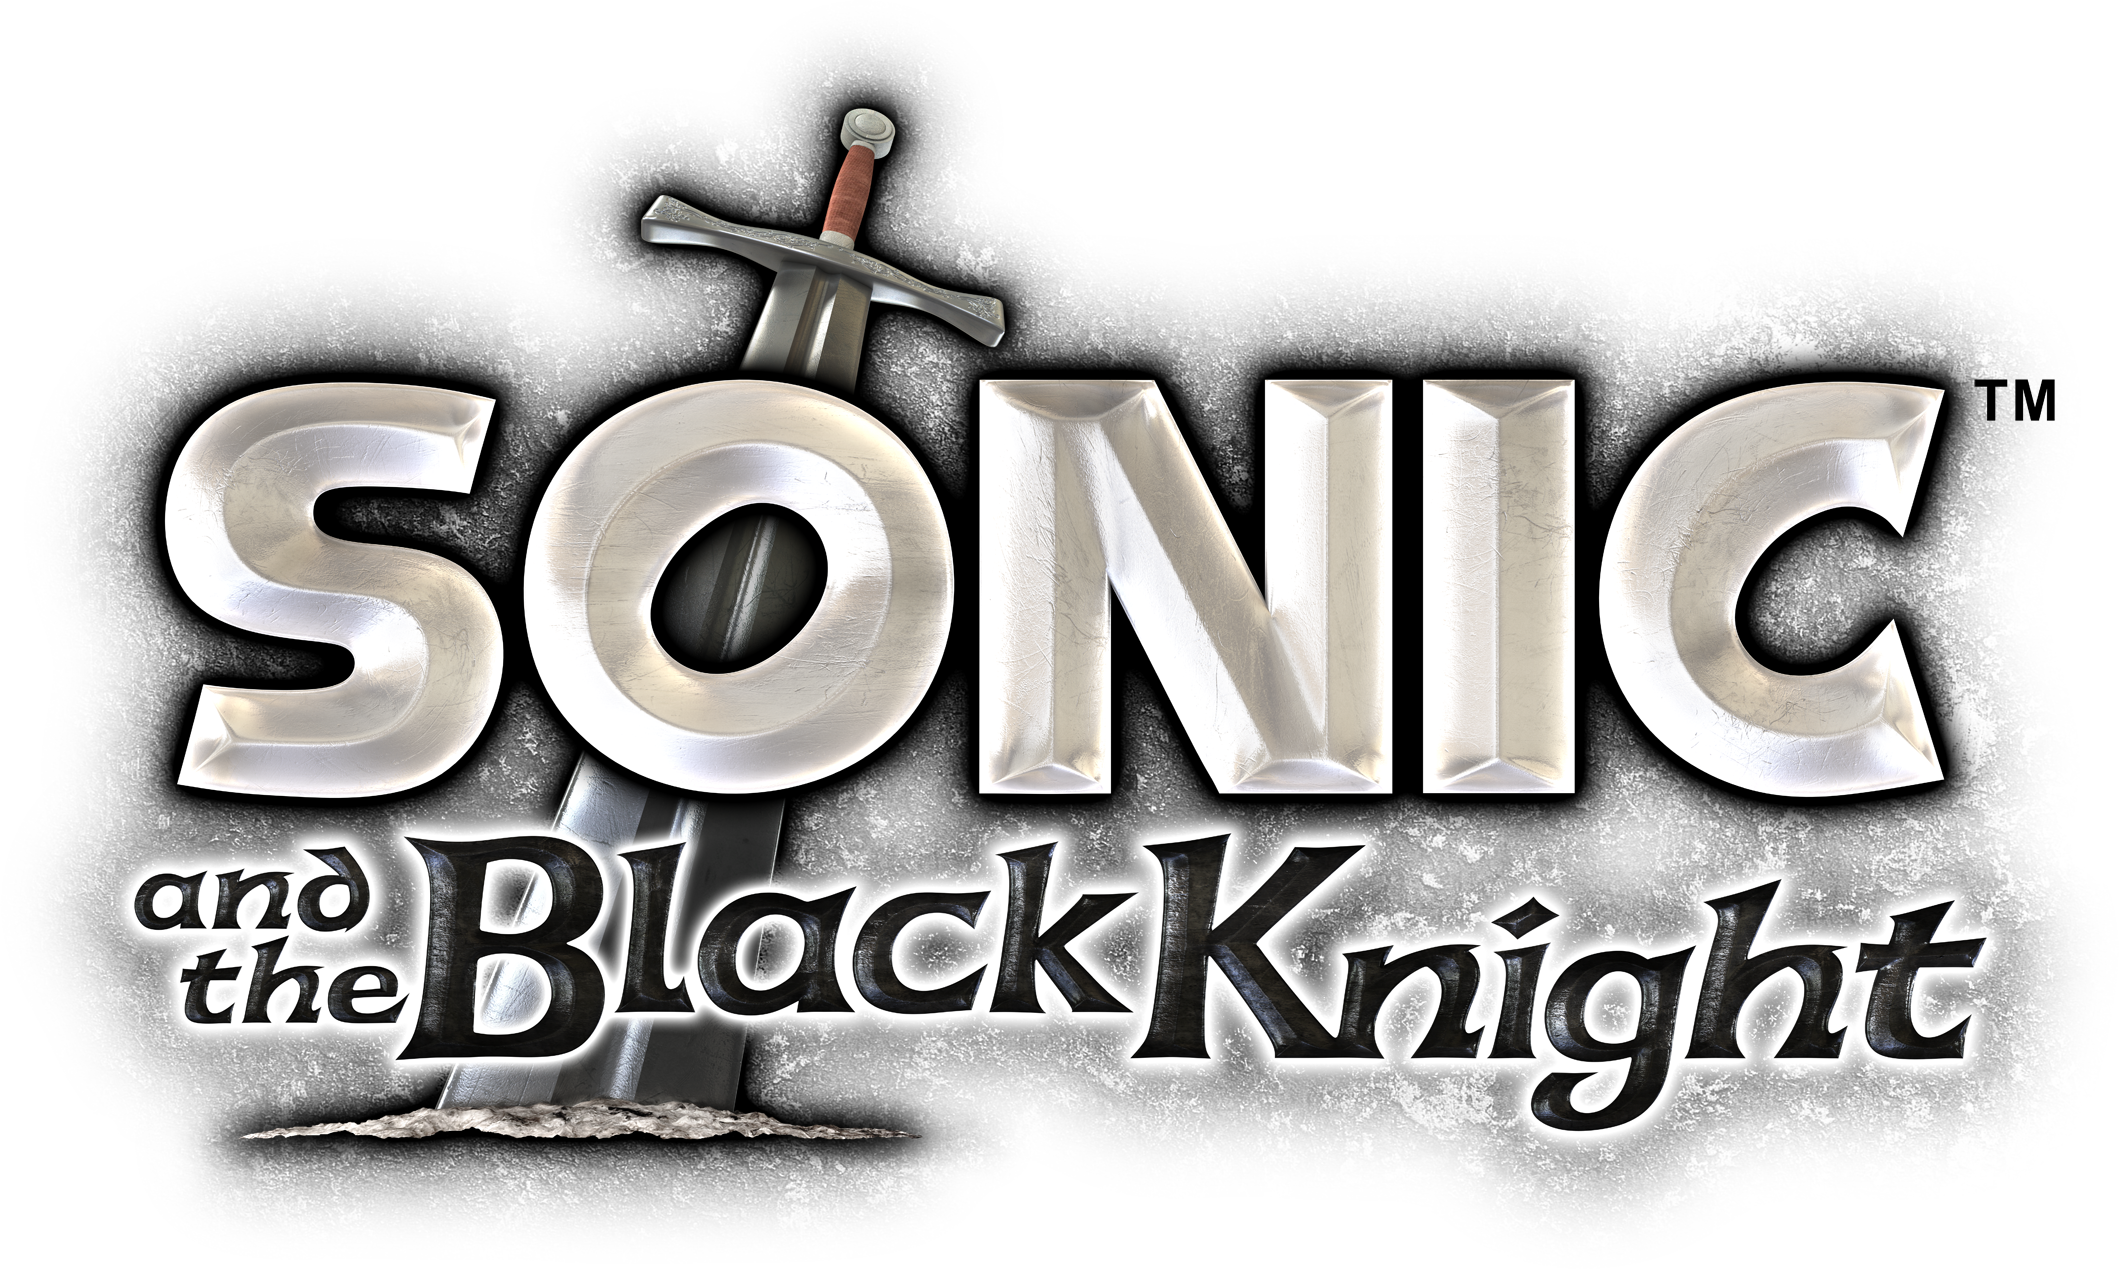 sonic and the black knight logos gallery sonic scanf